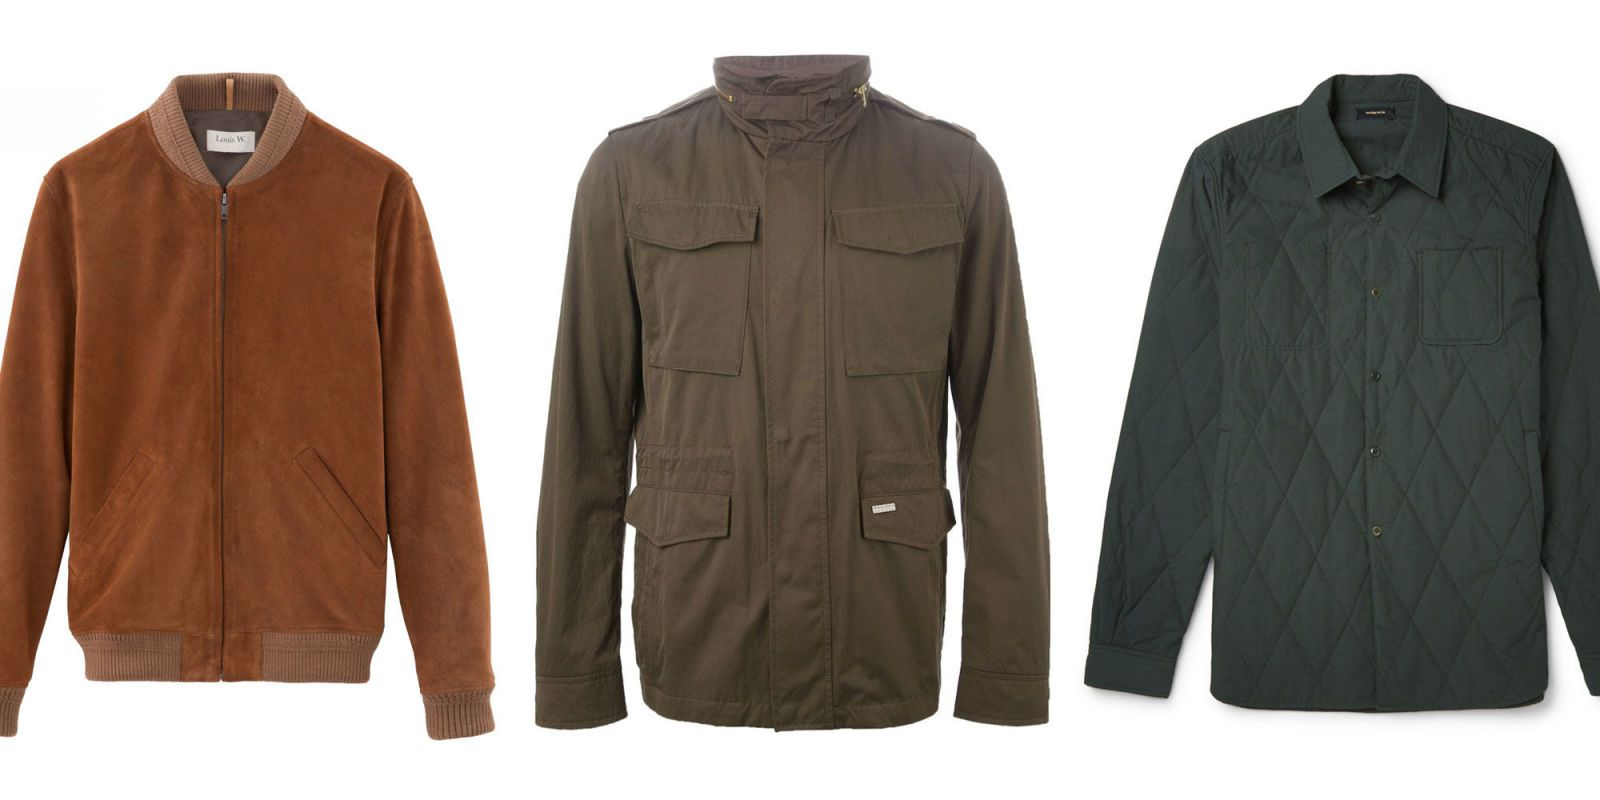 Transition jackets from bombers to field coats, a roundup of the best outerwear for the season  ahead. VBIXPSM